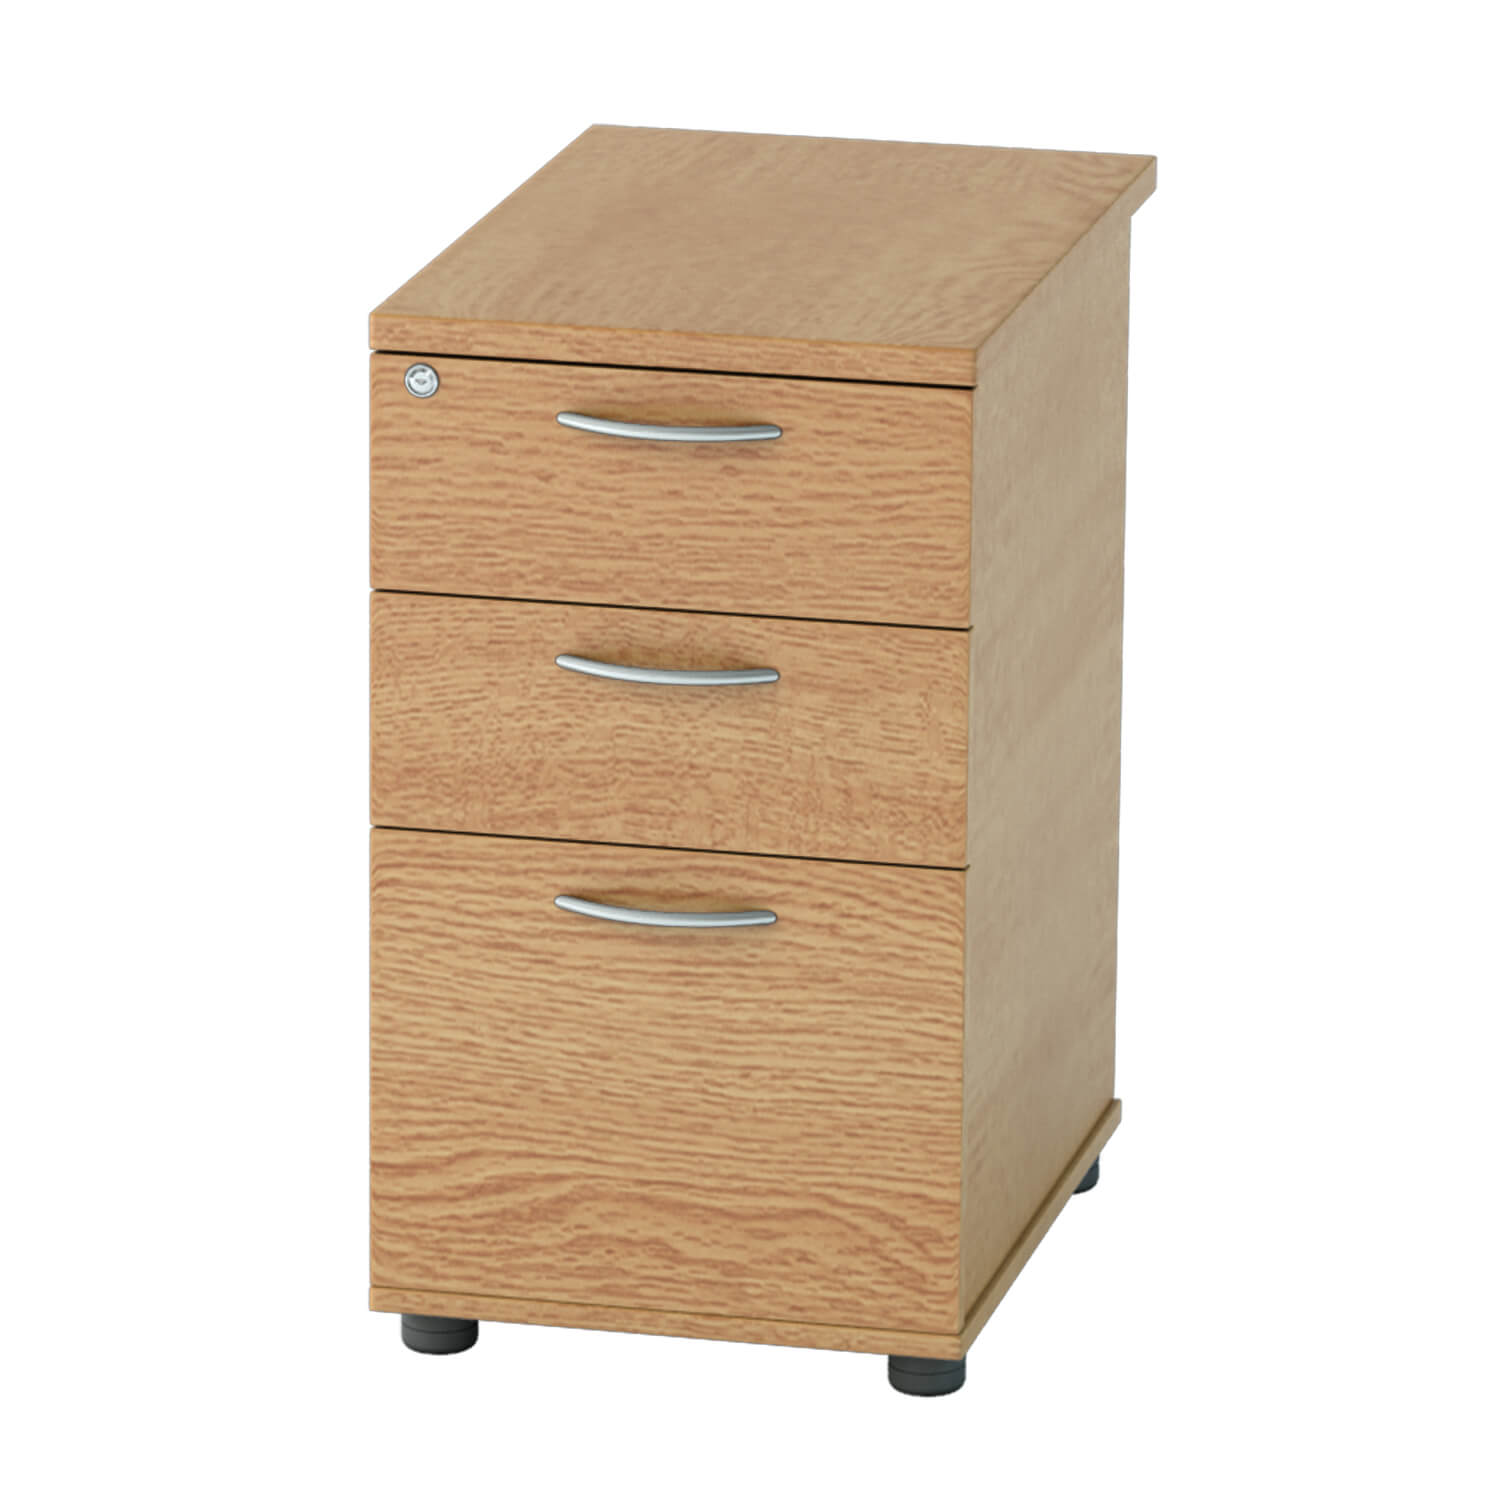 DH Pedestal 3 drawer Light Oak